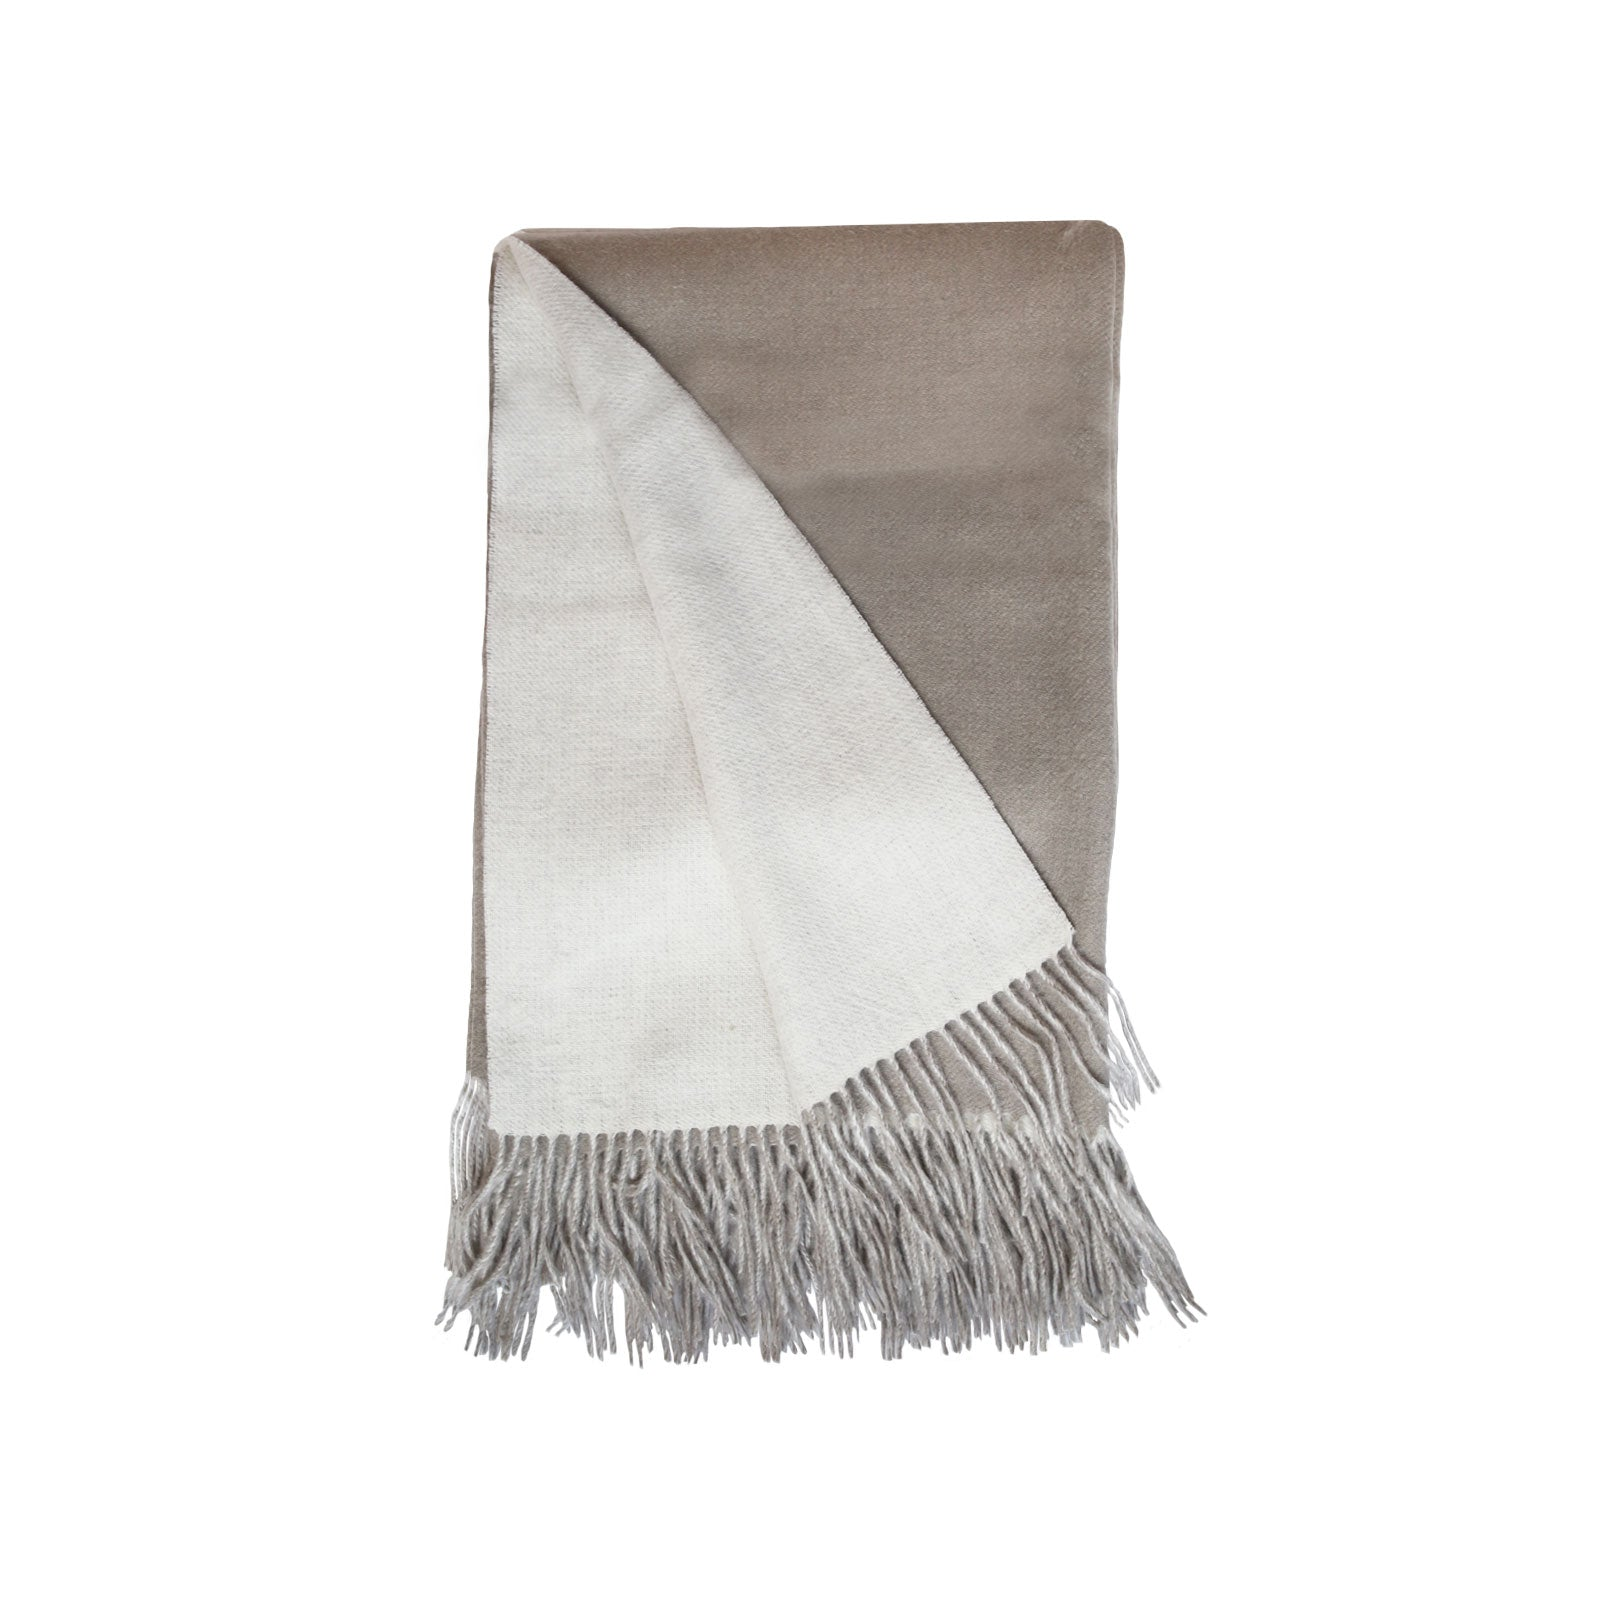 Wool and Cashmere Woven Throw in Stone & Light Grey